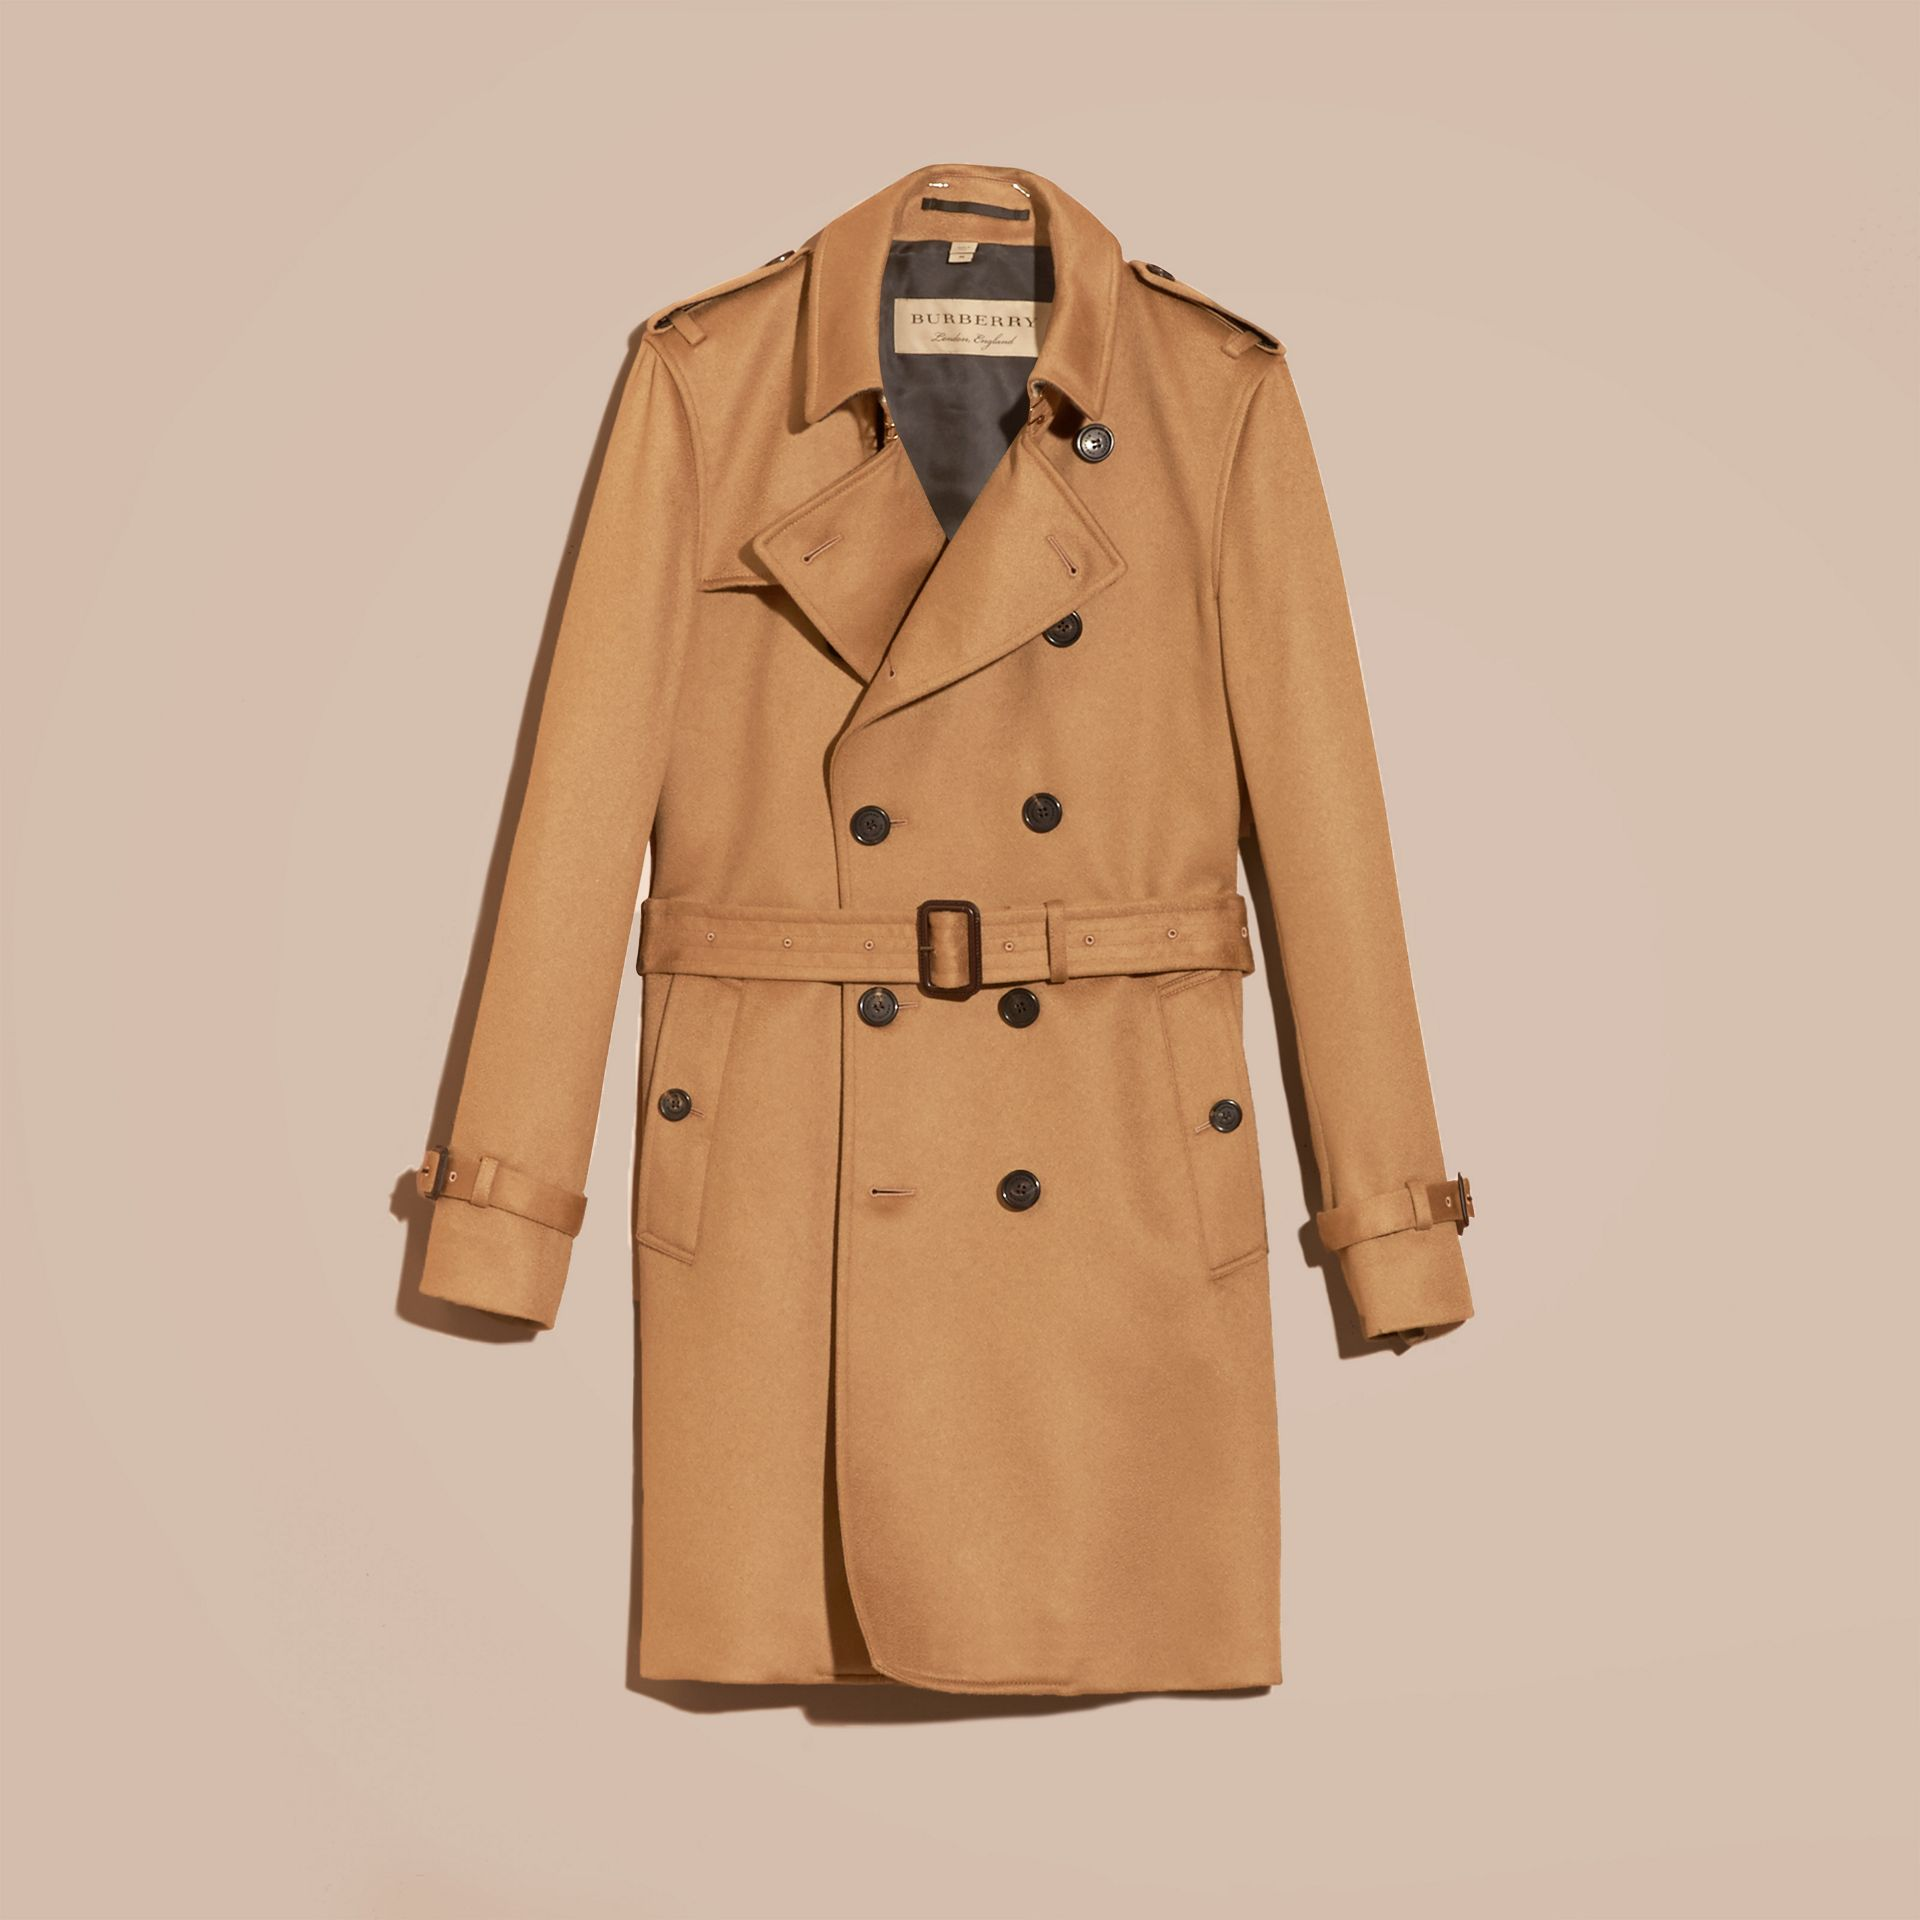 Cashmere Trench Coat in Dark Camel - Men | Burberry United States - gallery image 4